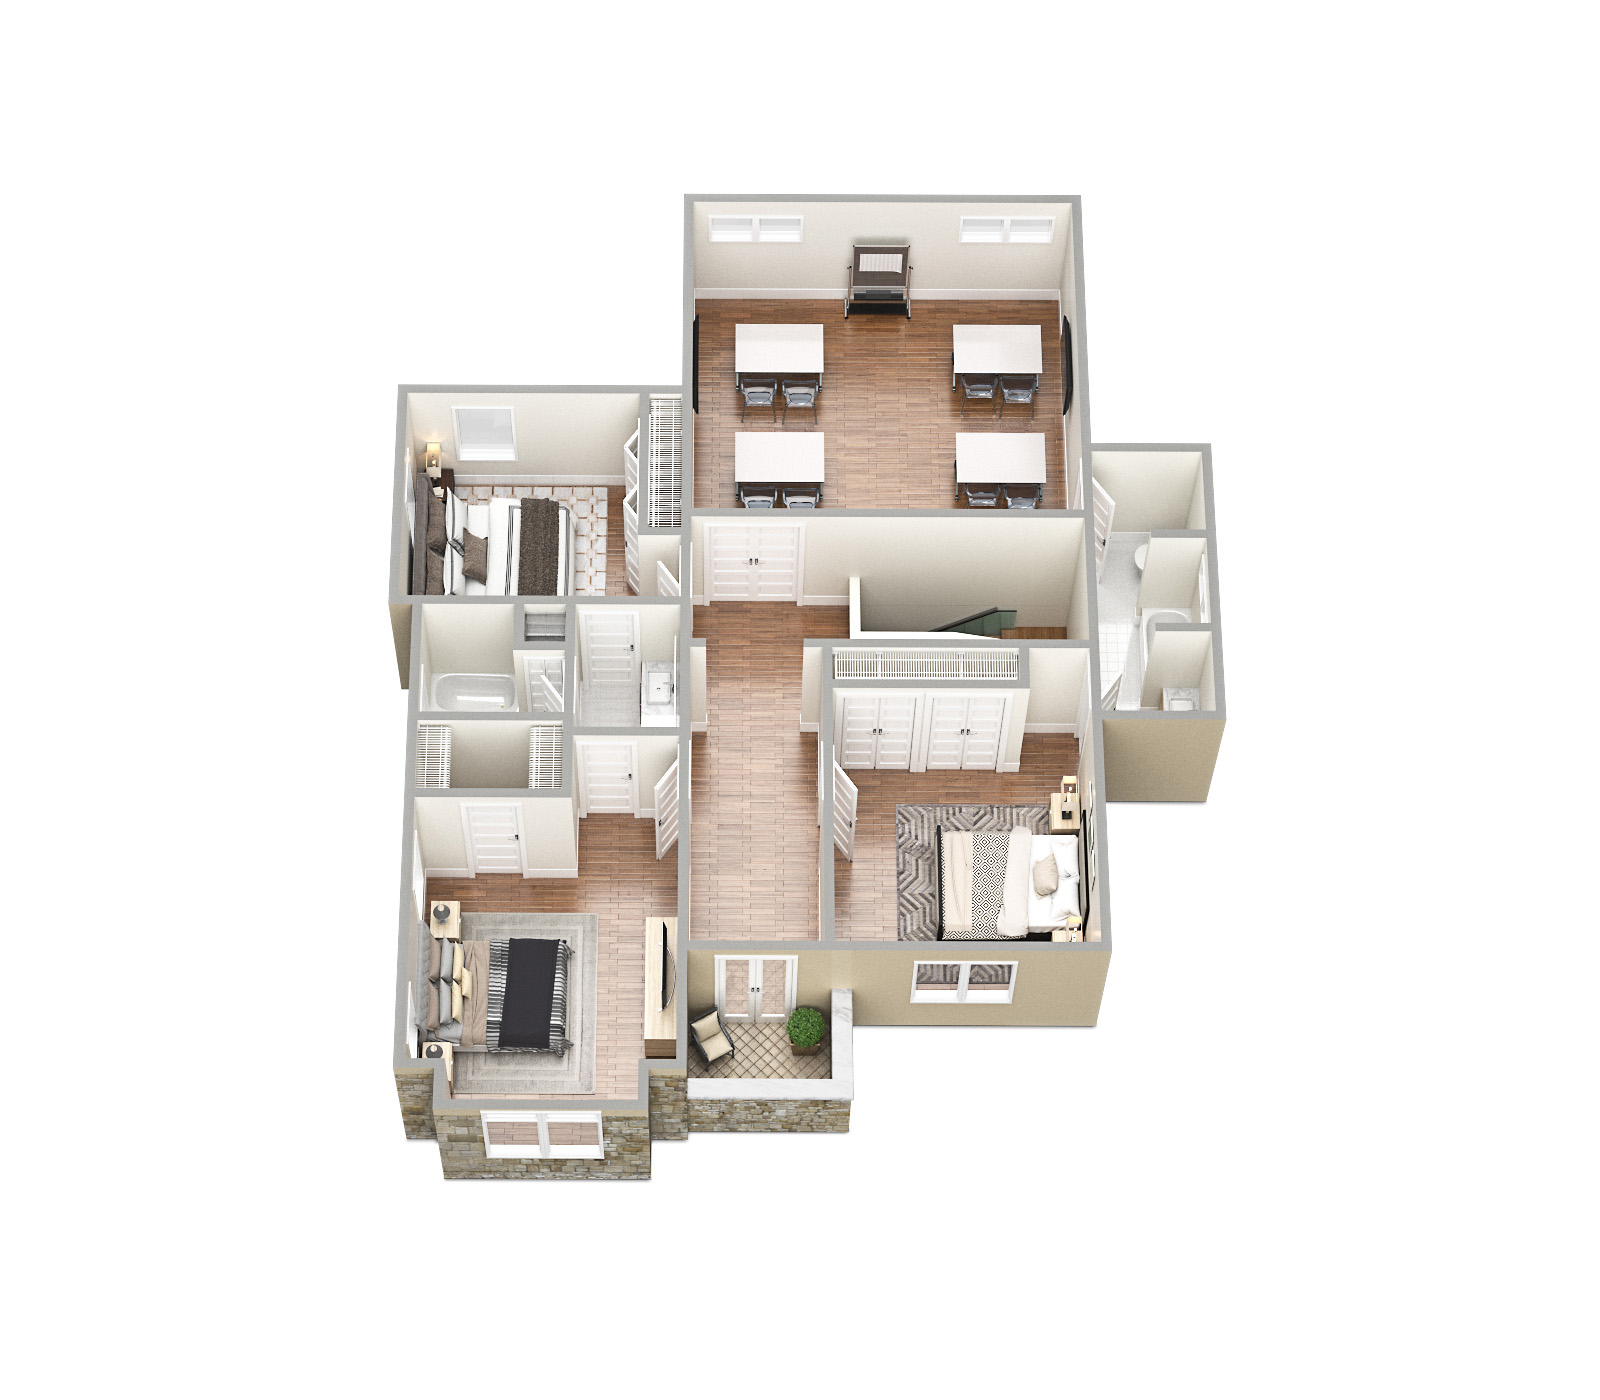 SawyerSound Sawyer 2nd floor 3D floorplan  by Tsymbals